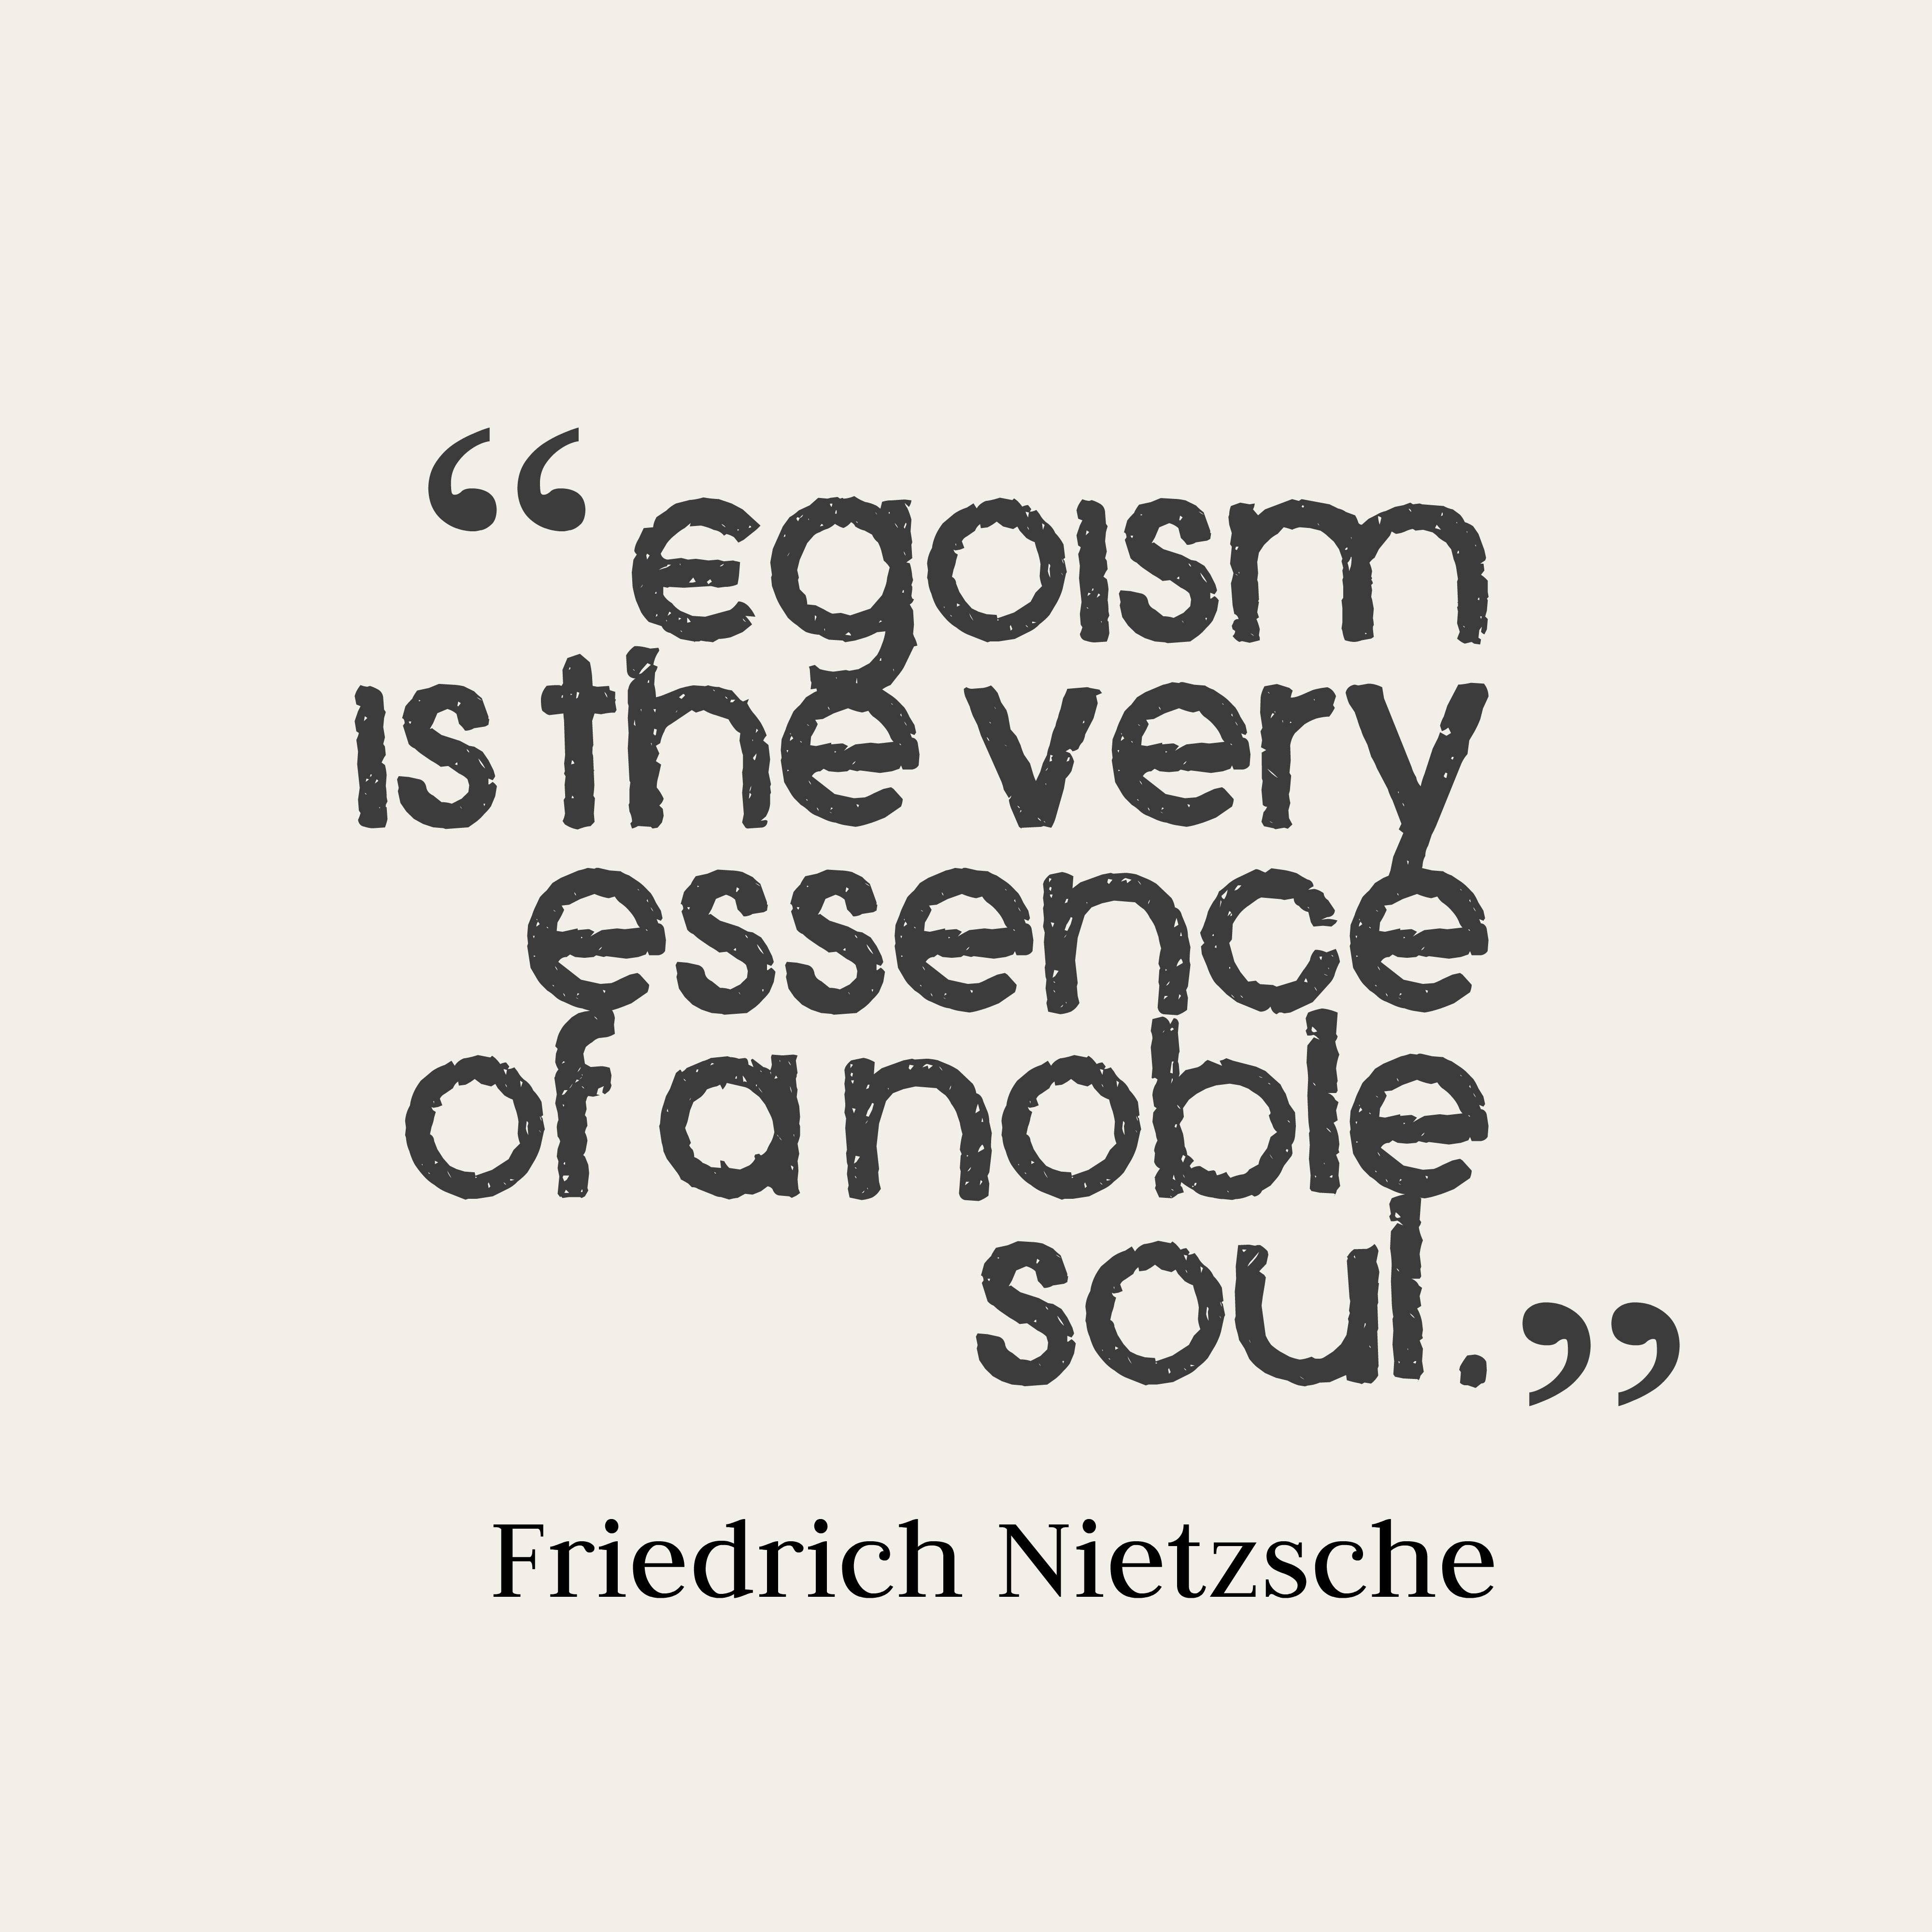 Quotes Nietzsche 91 Best Friedrich Nietzsche Quotes Images